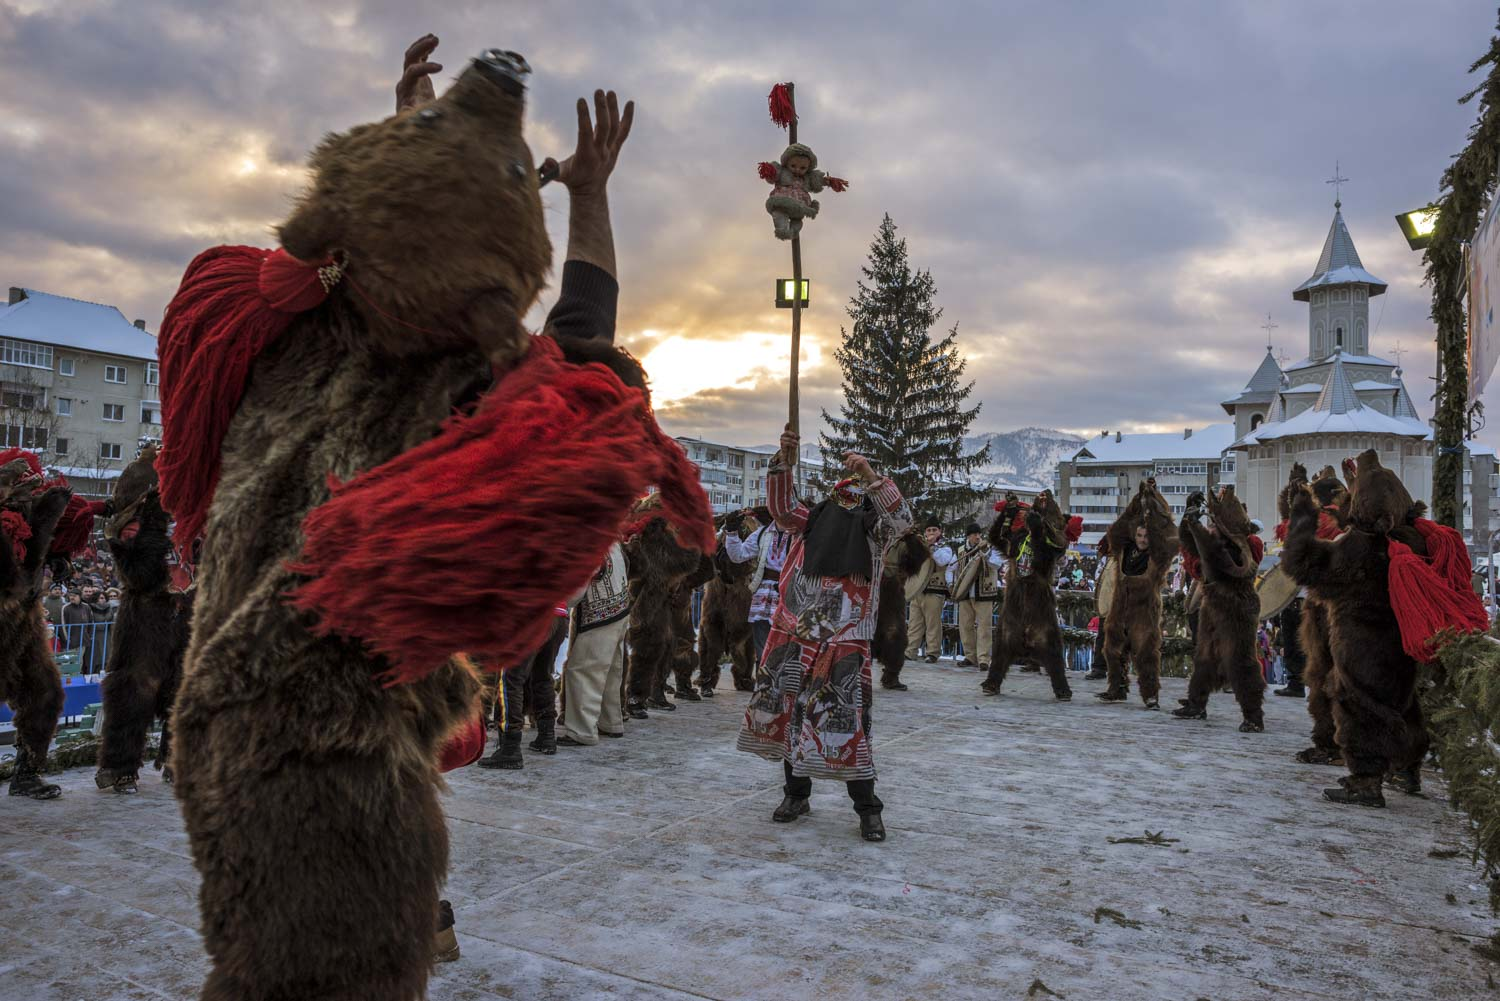 A troupe of bears performs on a stage set up in central  Comăneşti for the town's annual Bear Parade and competition. December 30, 2014. Comăneşti town, Bacău county, Romania. © Diana Zeyneb Alhindawi